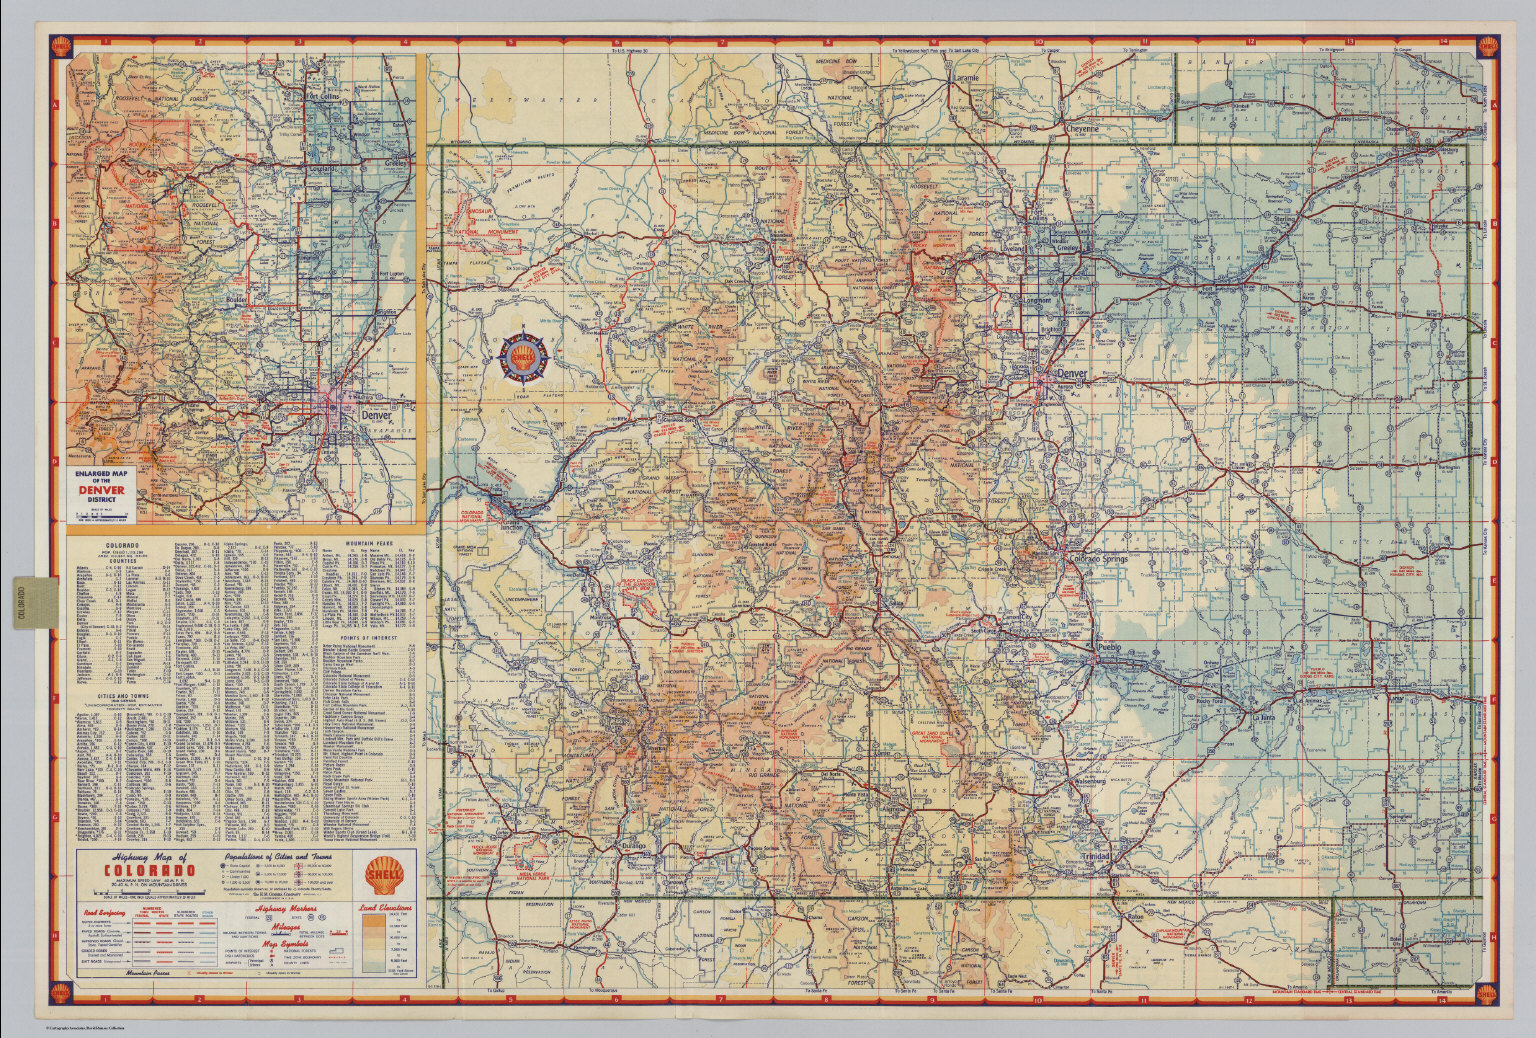 Shell Highway Map Of Colorado David Rumsey Historical Map - Colorado road map